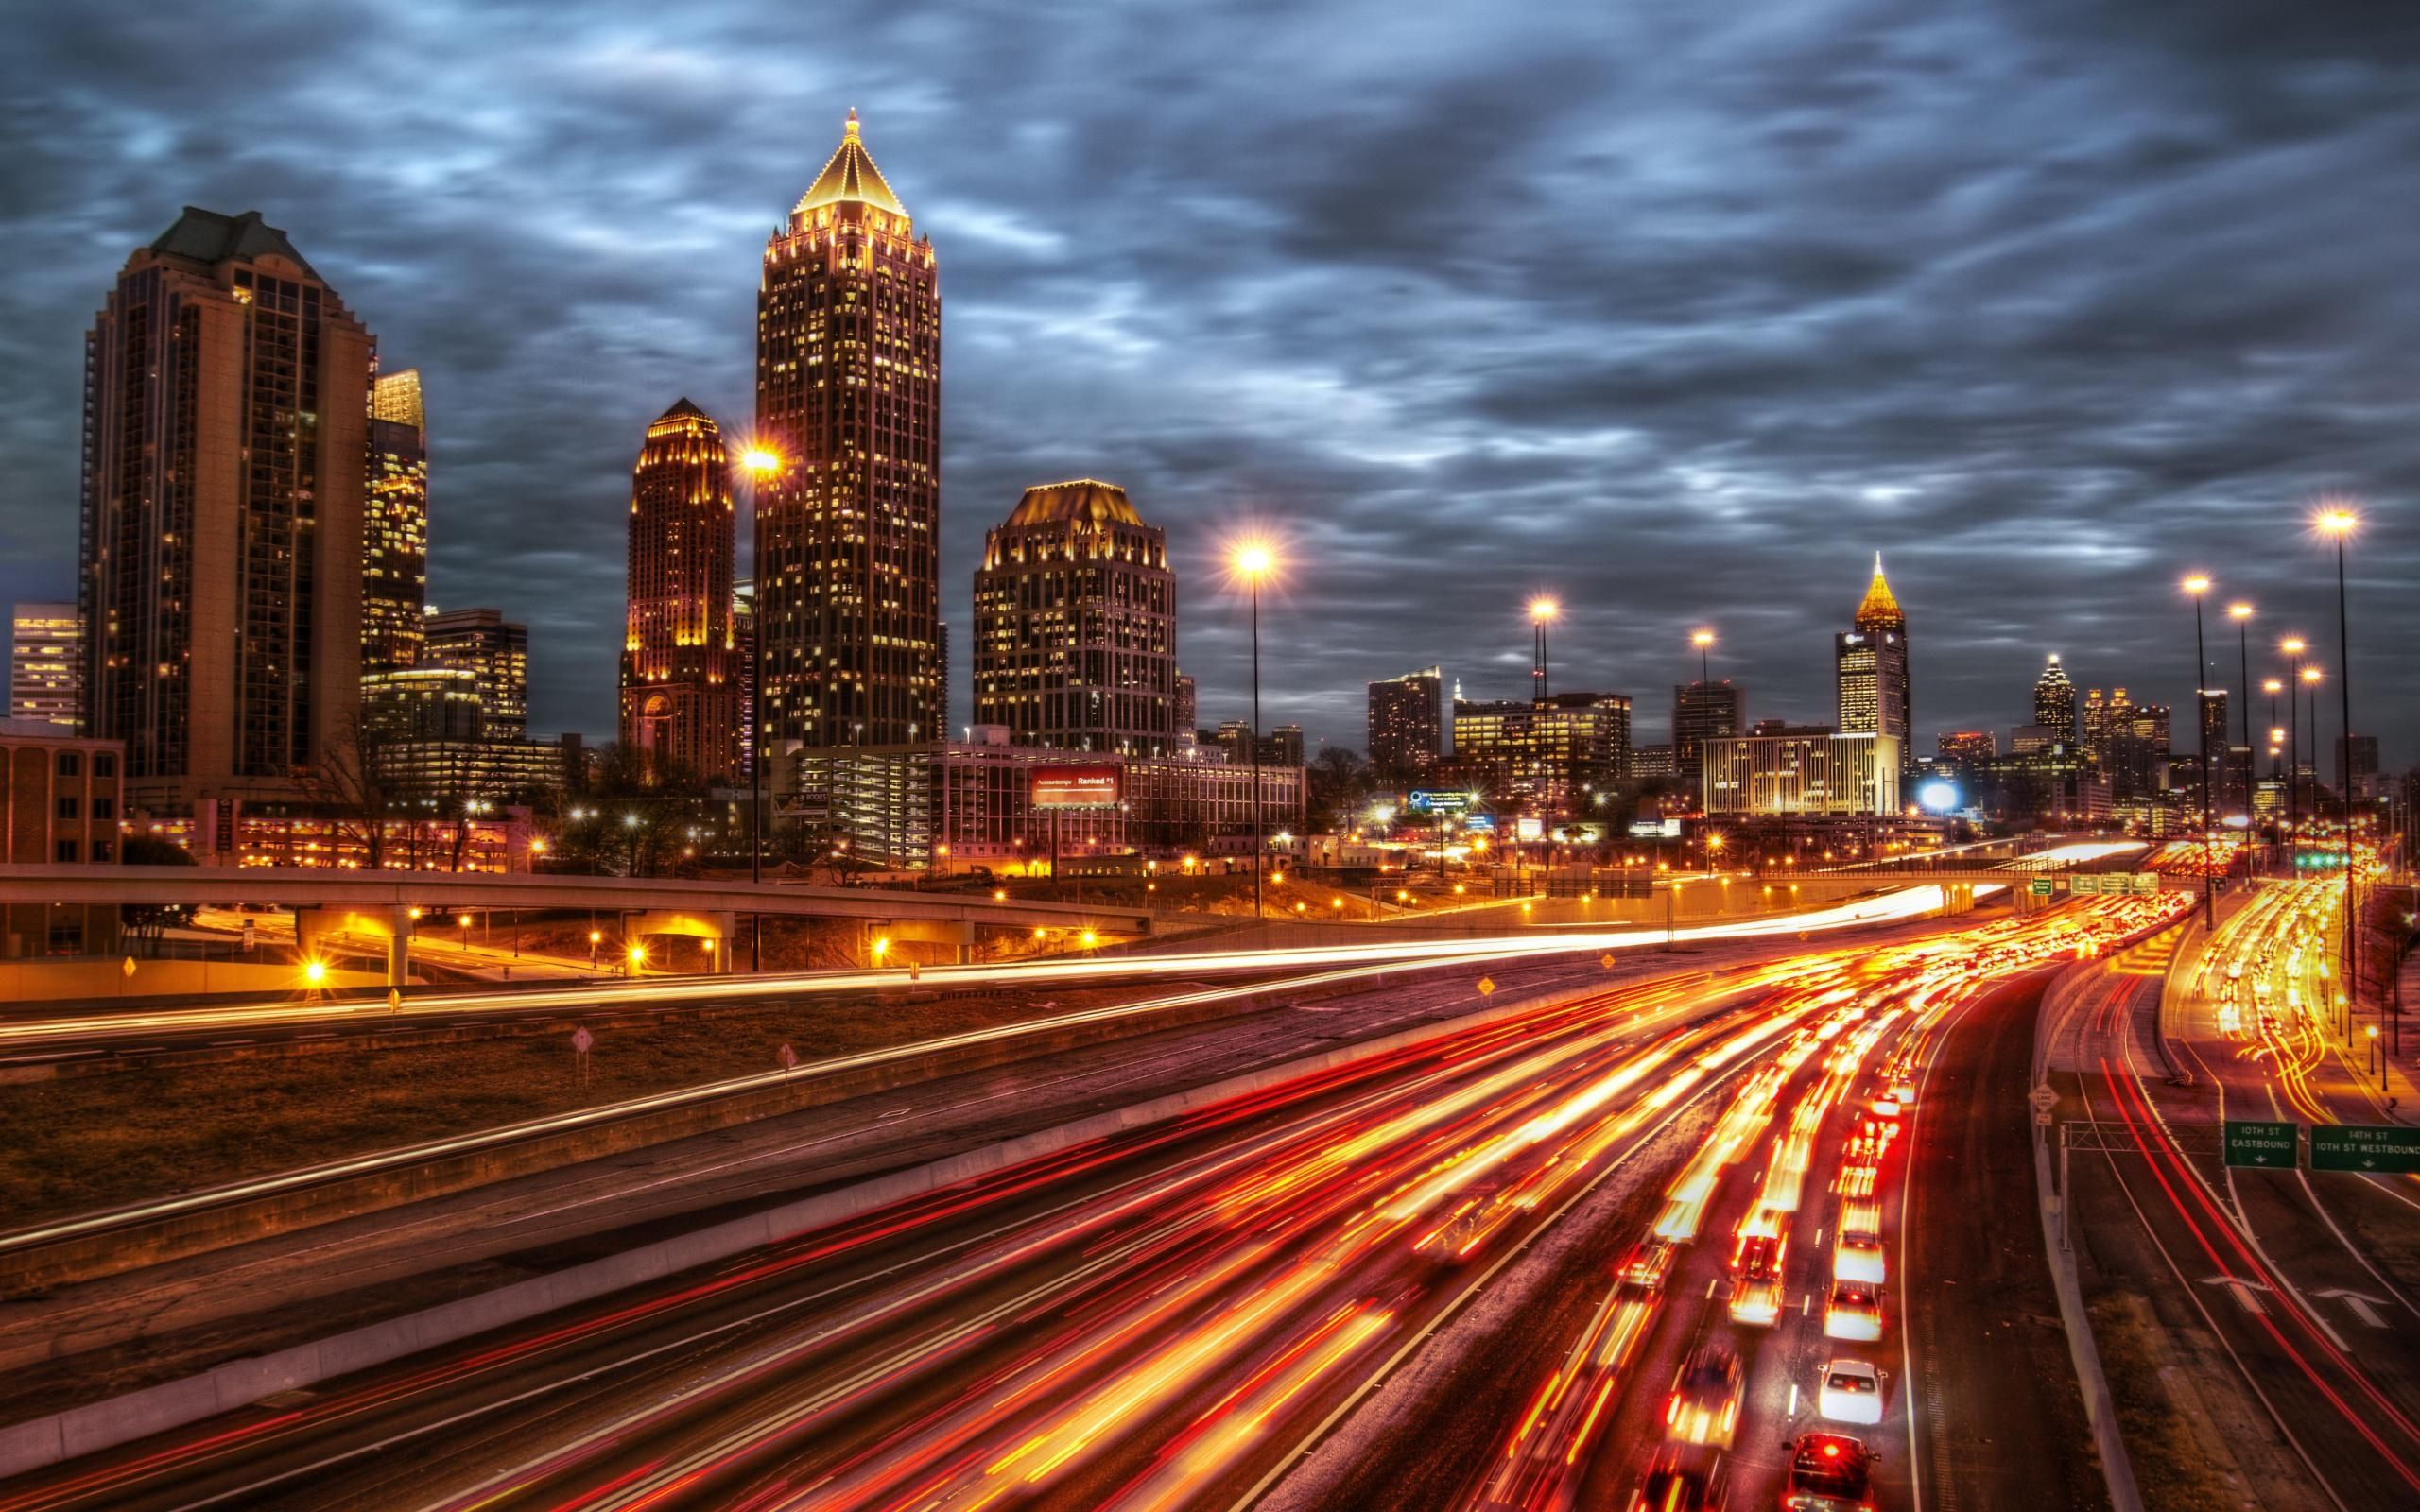 Atlanta City Night Usa Hd Wallpaper Download Awesome Nice And High Quality Hd Wallpapers From Backgroundwallpapershd For Free